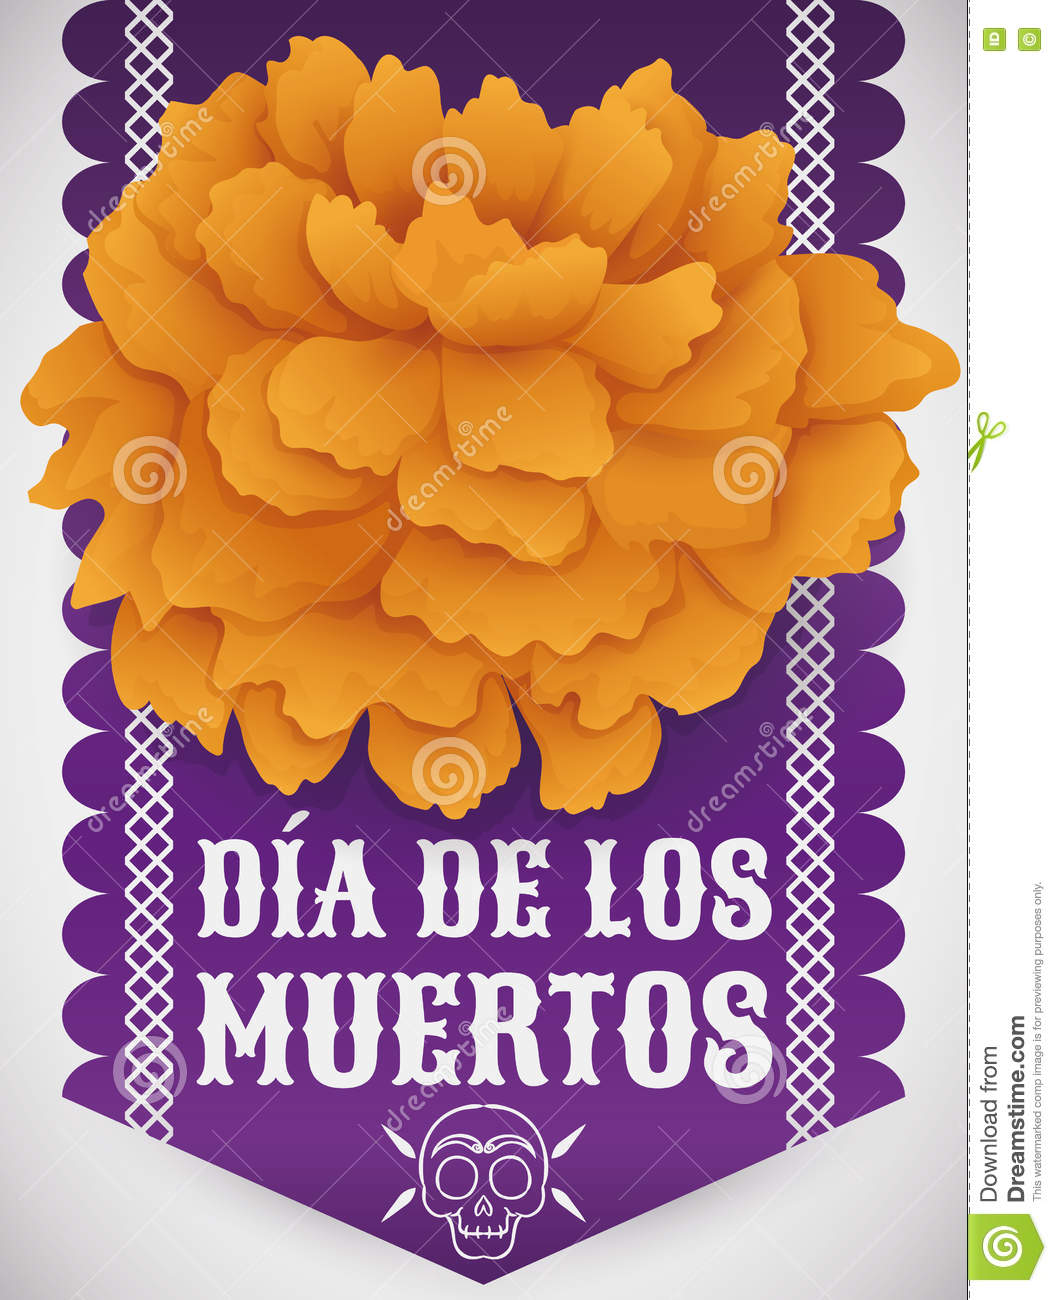 Traditional Cempasuchil Flower Over Tissue Paper For Dia De Muertos